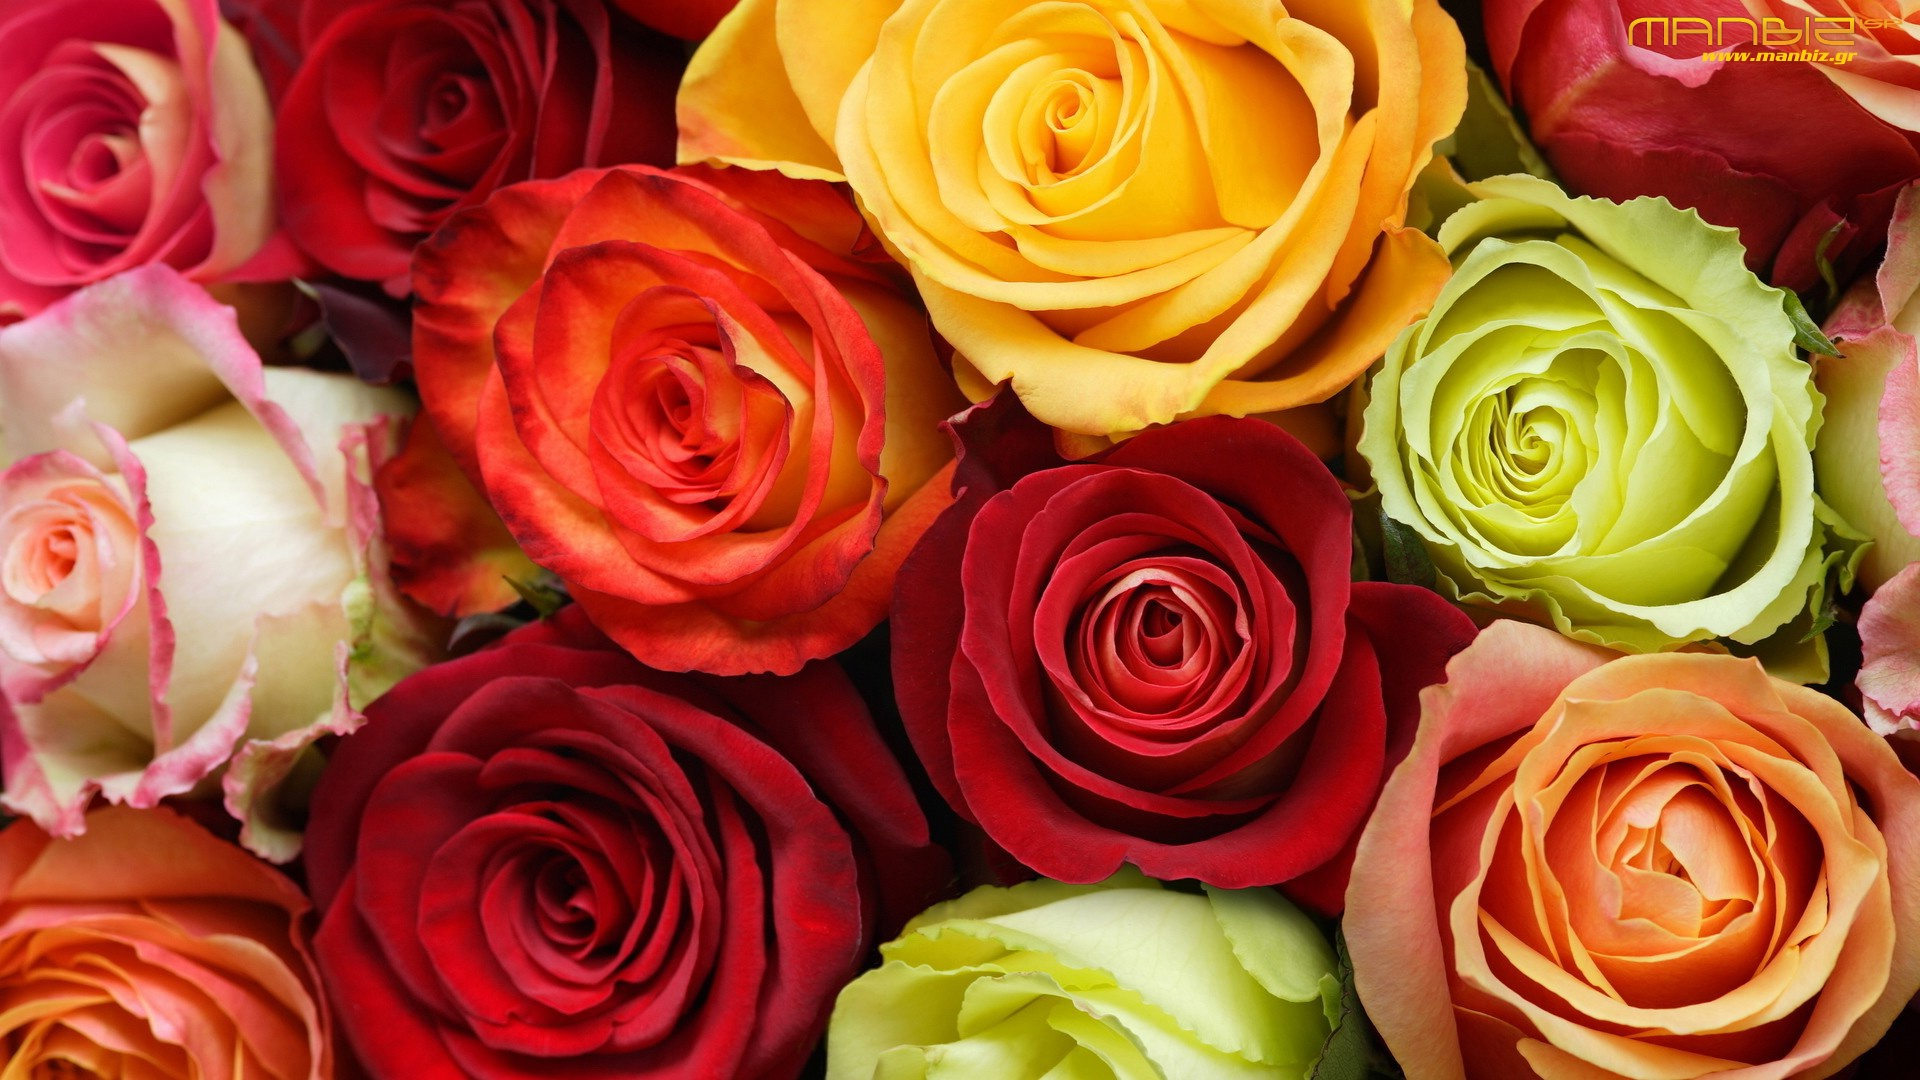 The Meaning Behind Valentine\'s Day Roses - Skips Florist